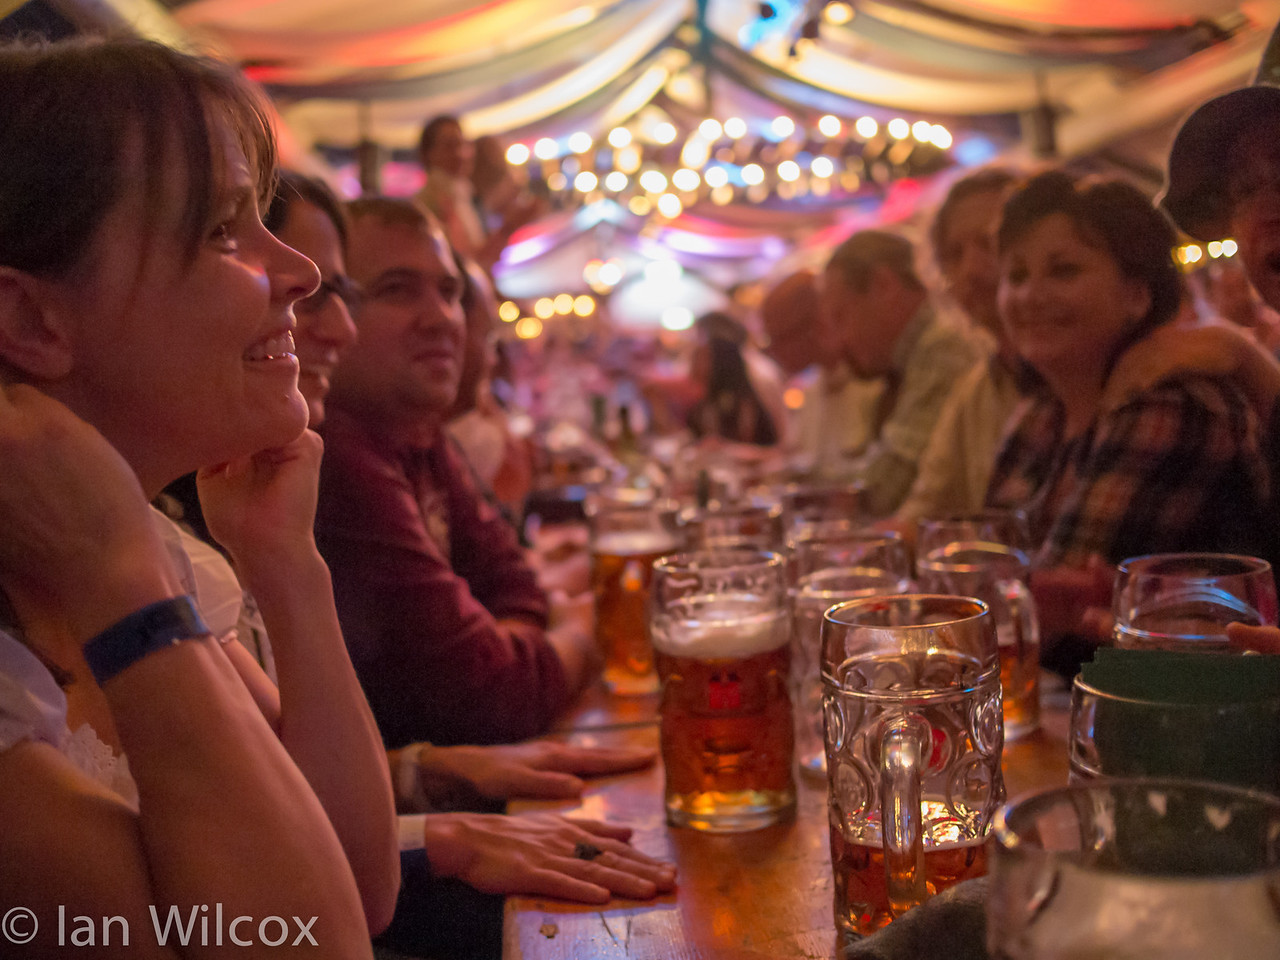 Monday 29th Oct - Oktoberfest fun